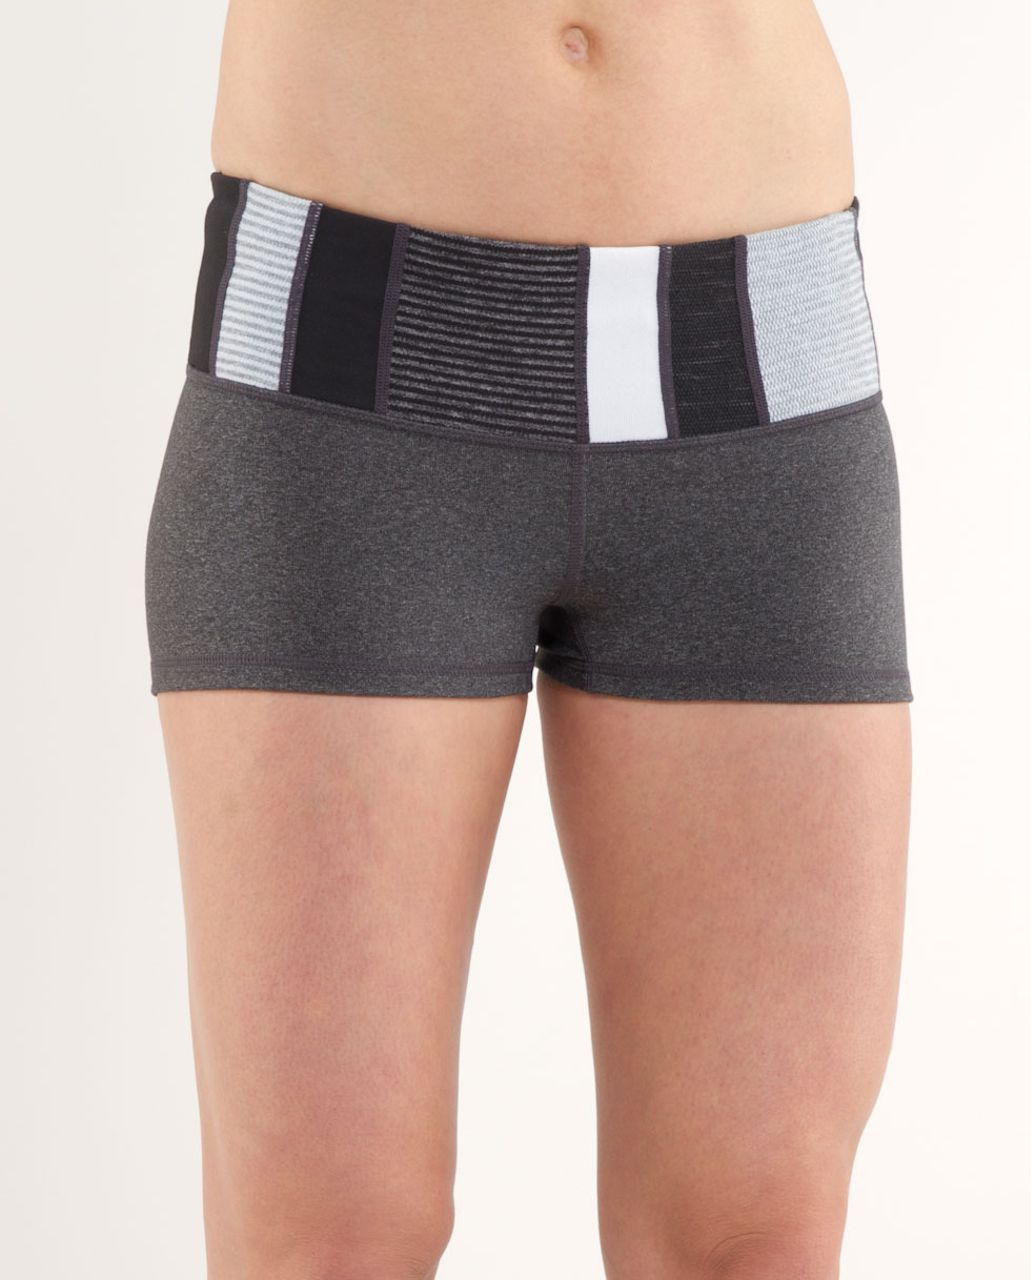 Lululemon Boogie Short - Heathered Deep Coal /  Quilting Winter 4 /  White Heathered Blurred Grey Mini Check